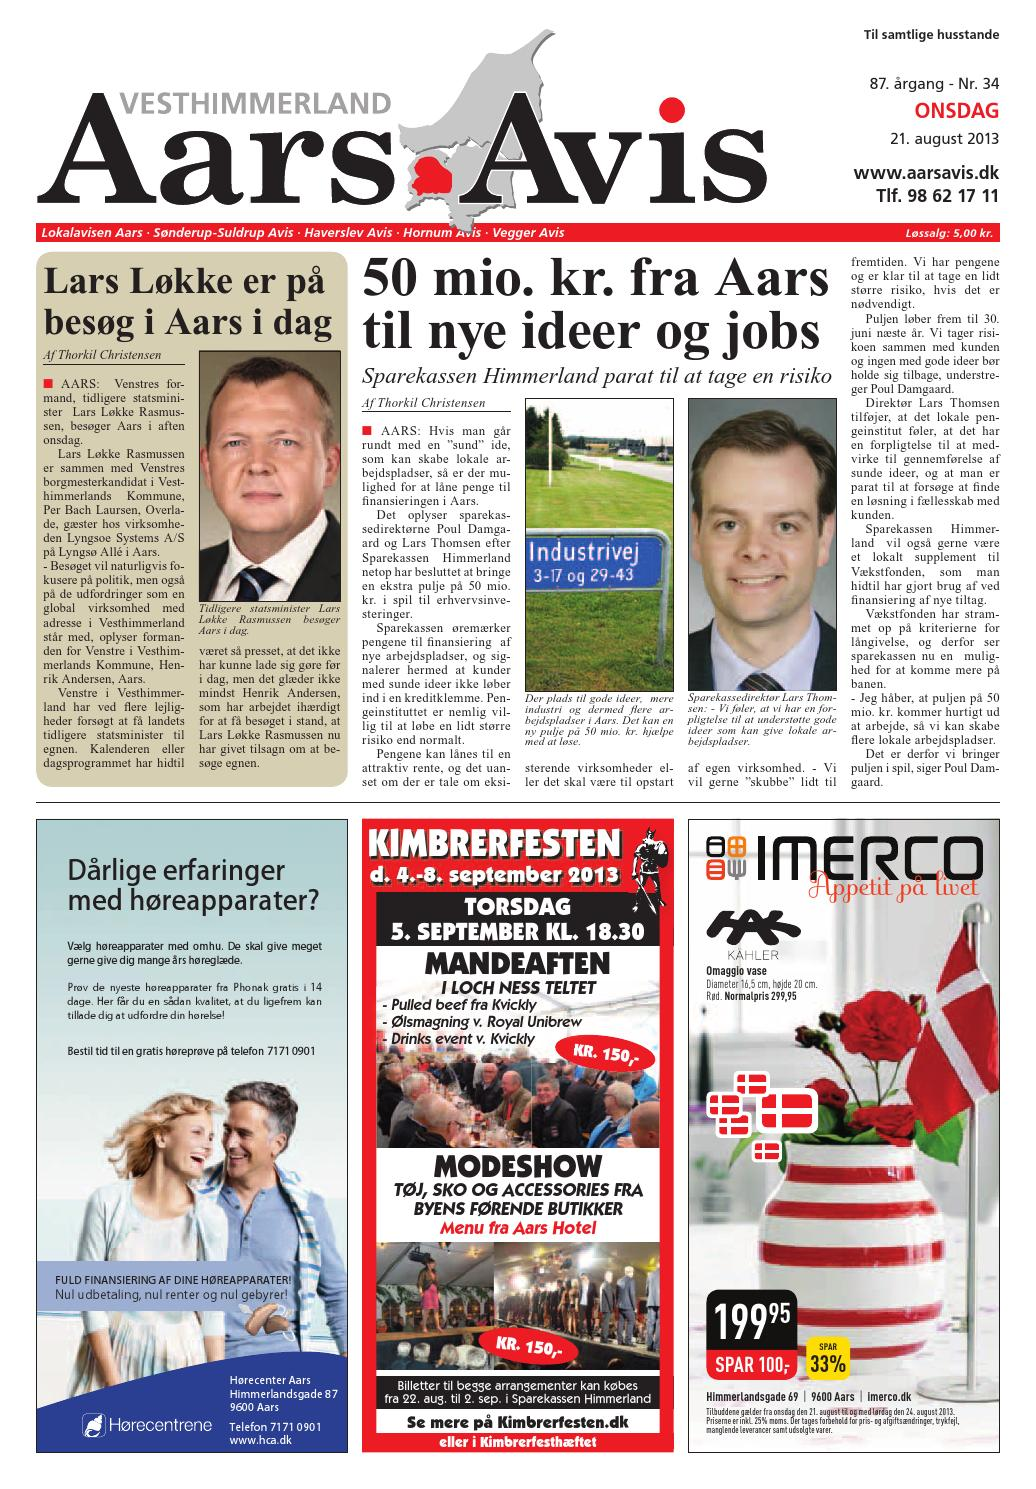 first rate fc66a 4a0e6 Aars avis 2013 08 21 by Aars Avis - issuu